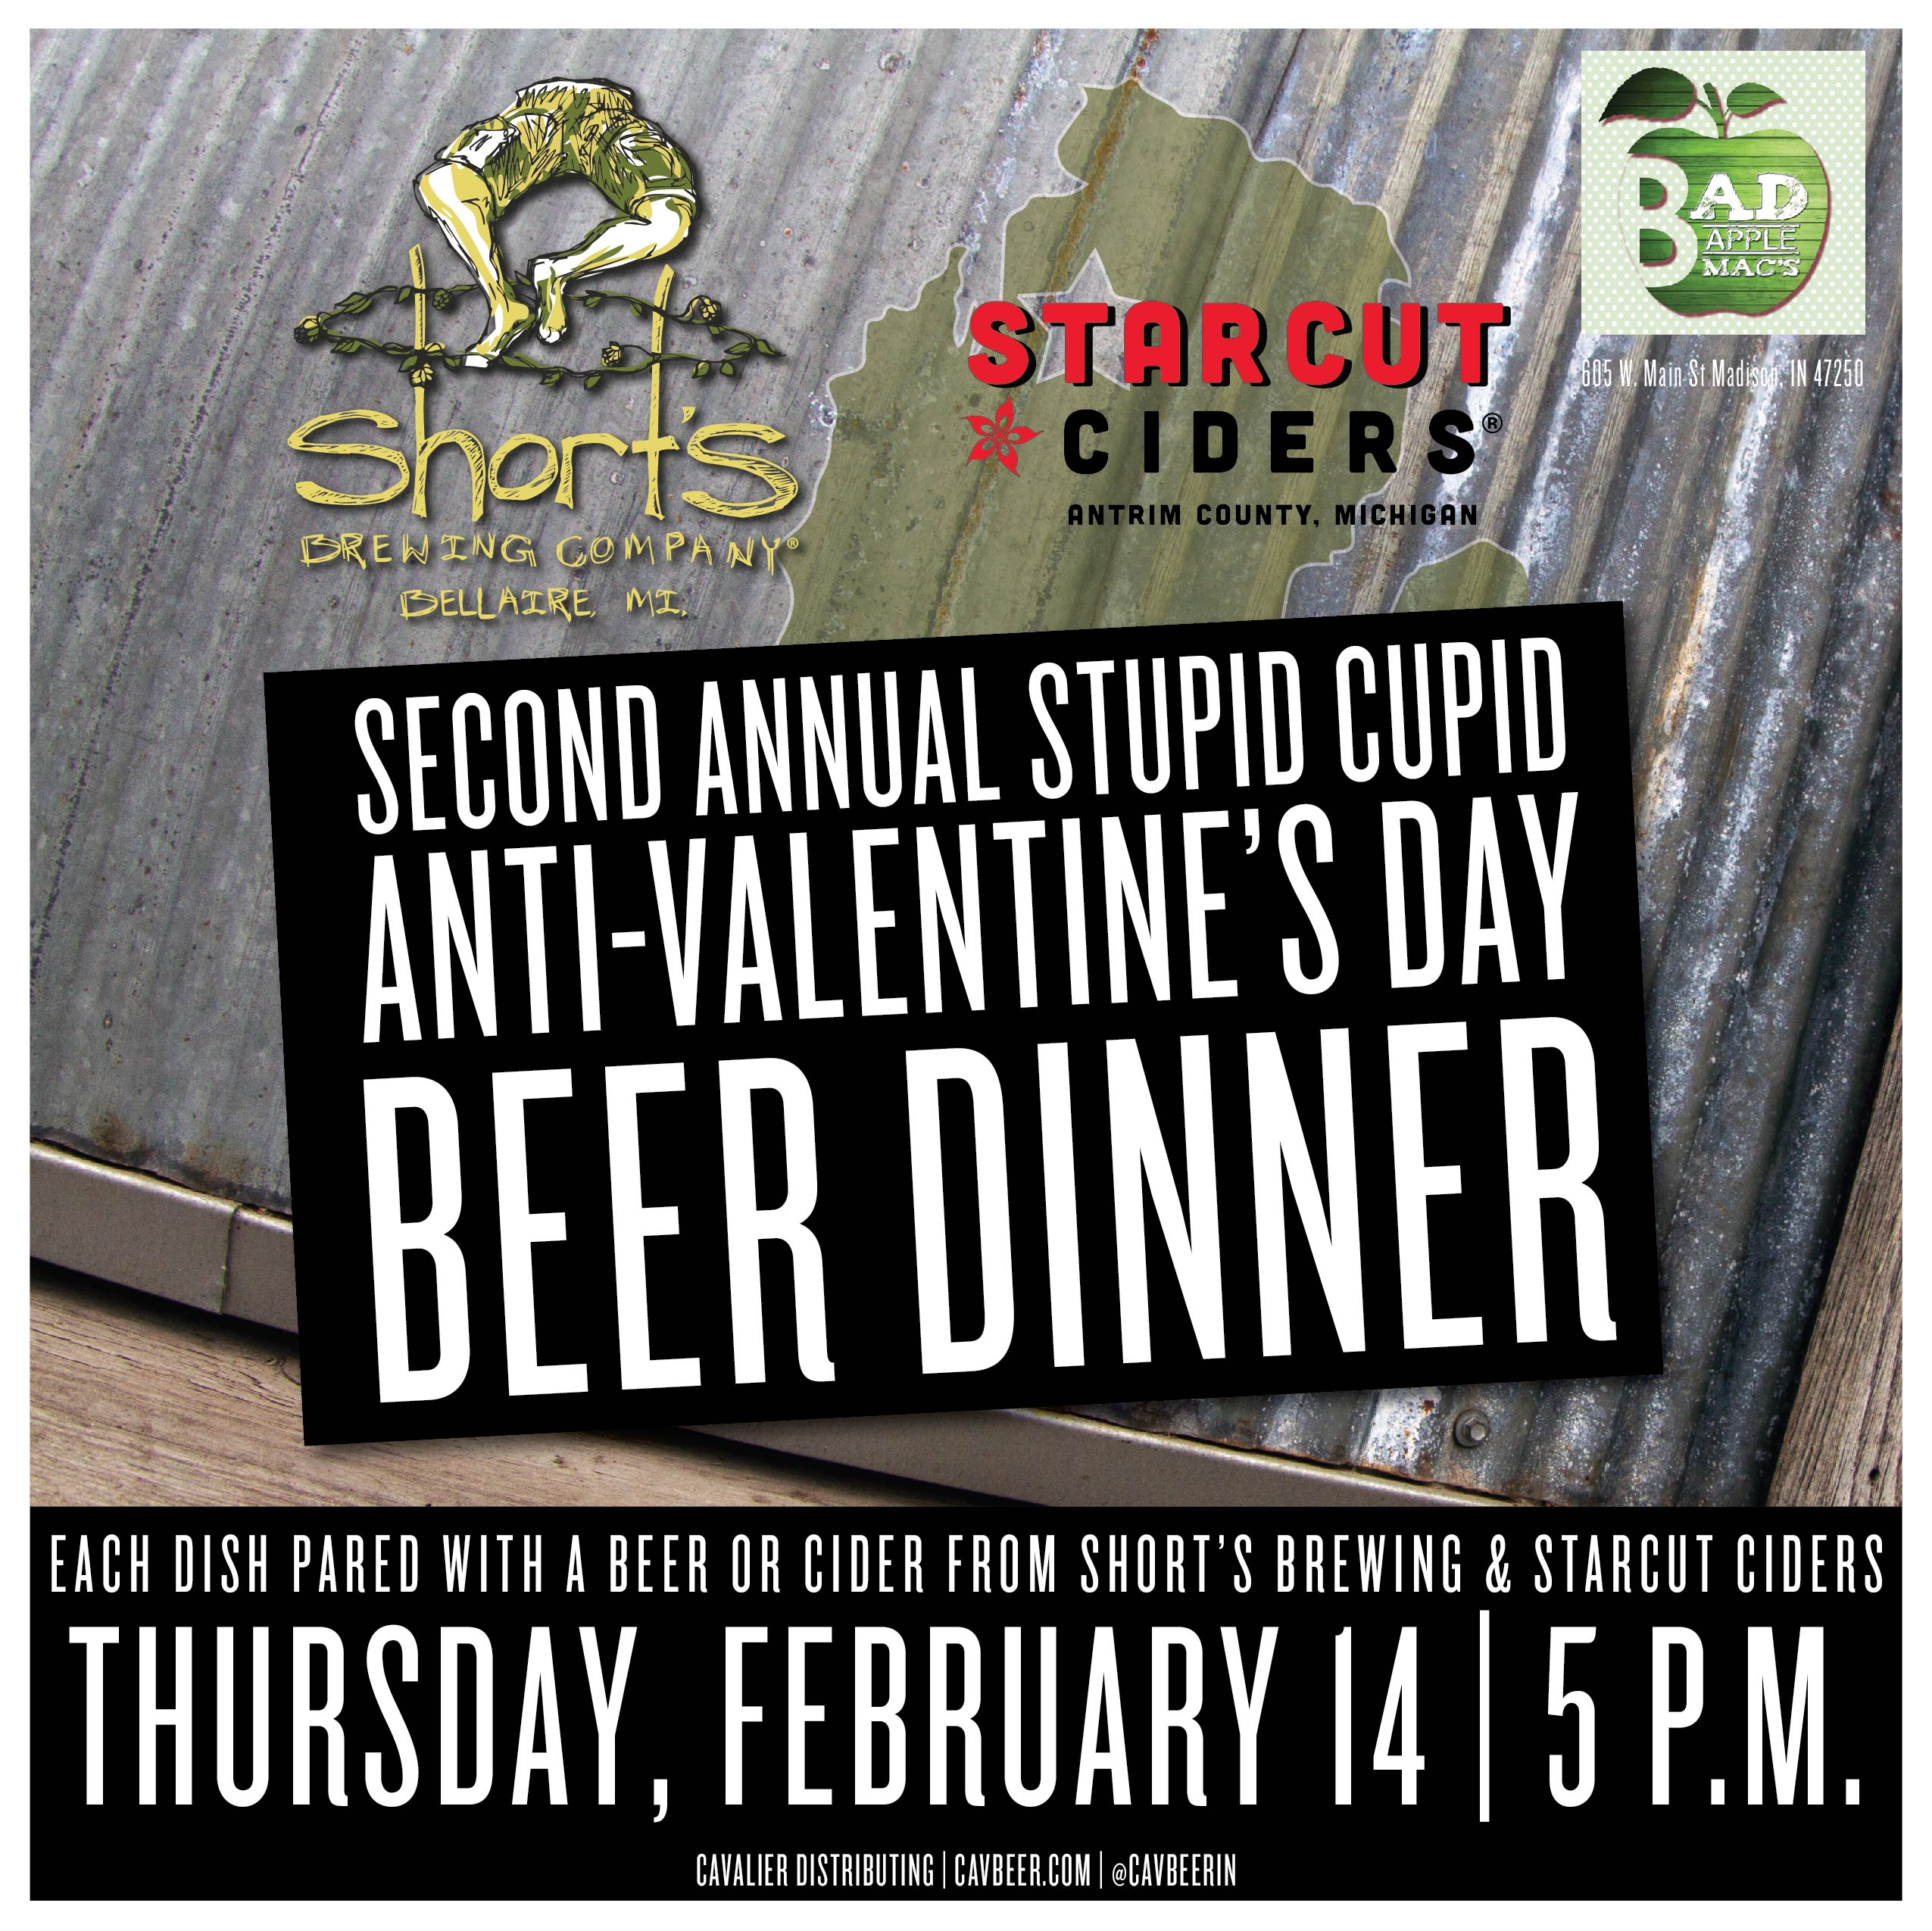 Anti-Valentine's Day Beer Dinner @ Bad Apple Macs